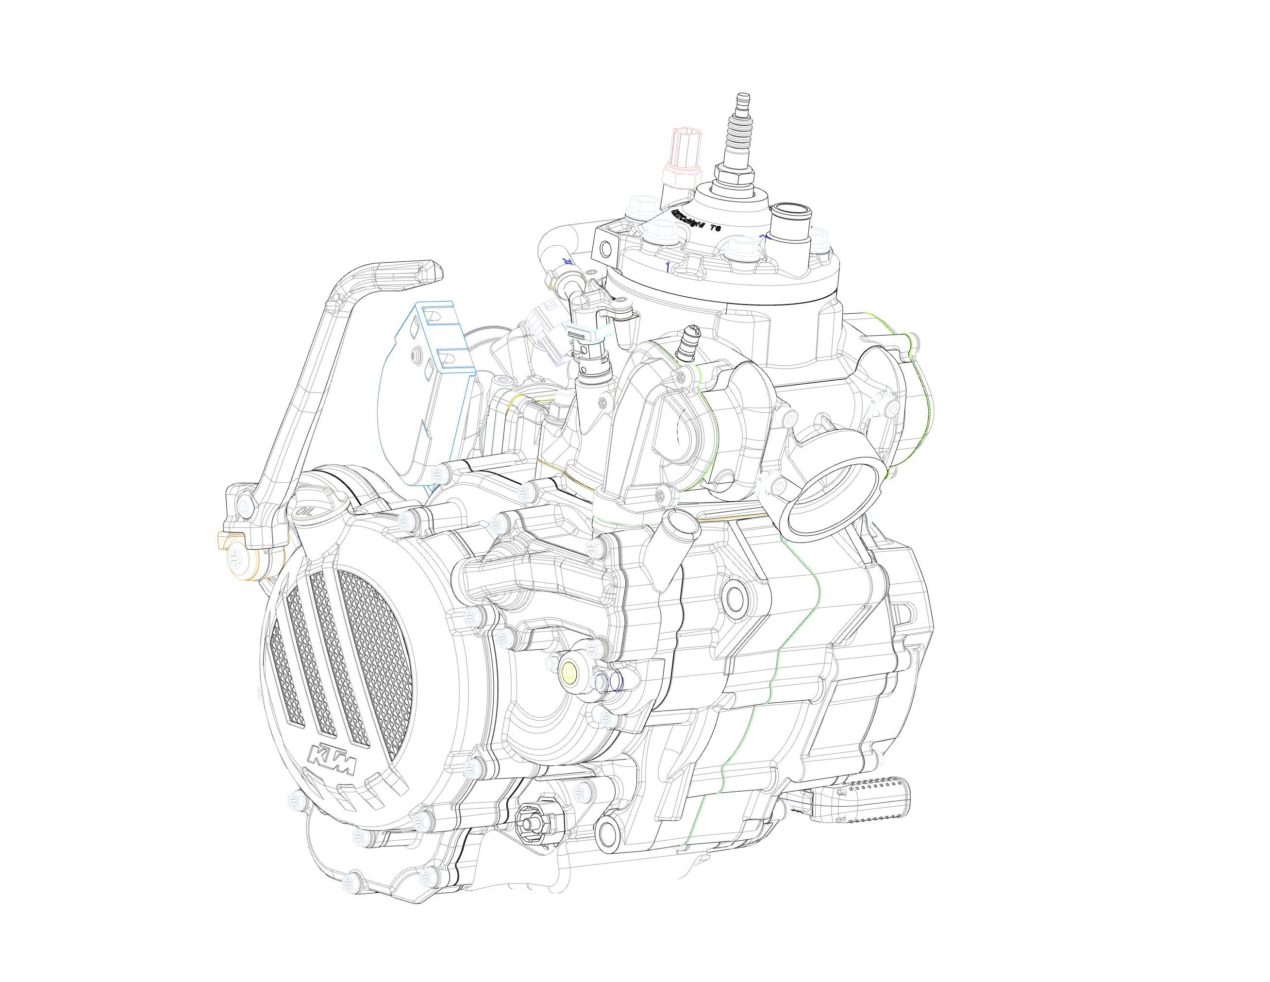 Ktm Debuts Fuel Injection For Two Stroke Motorcycles